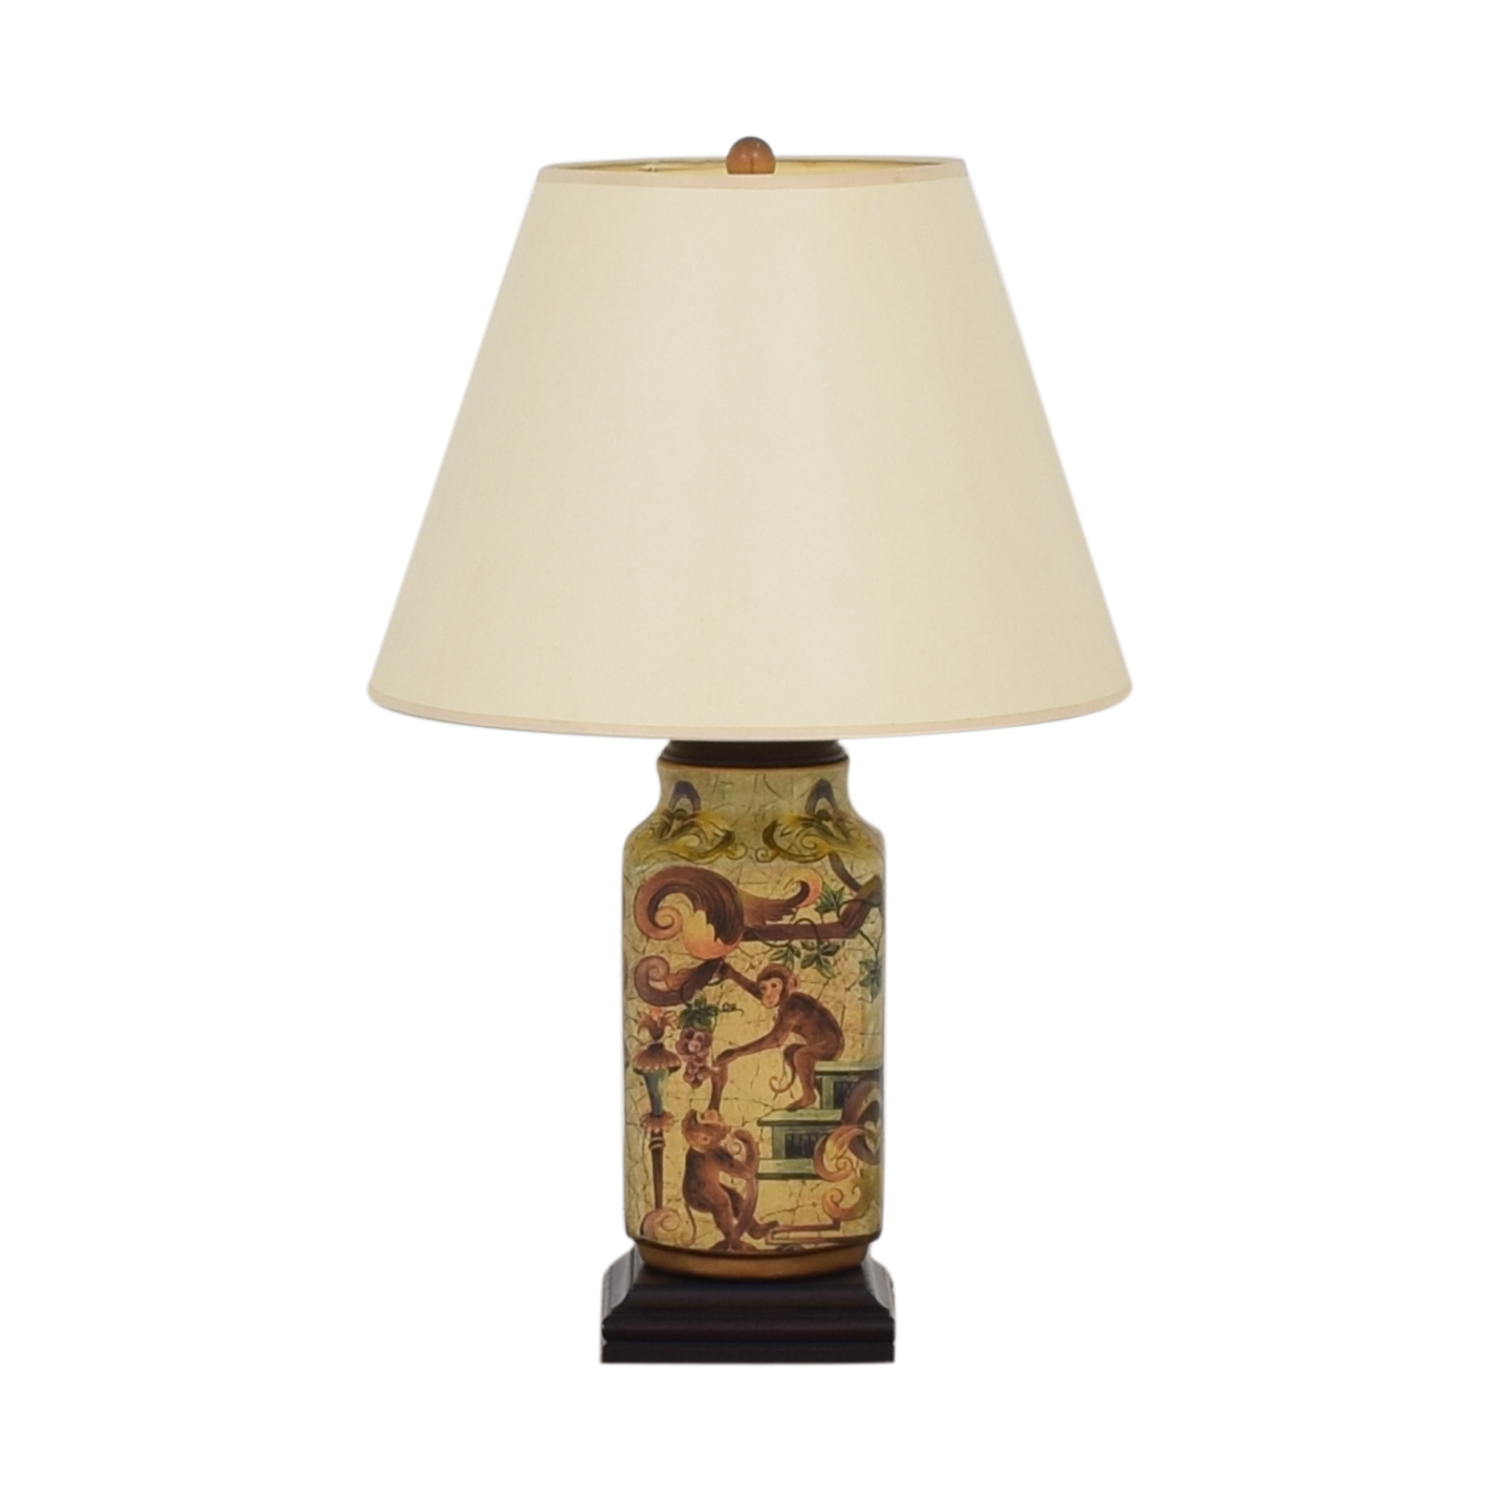 Vintage Decorative Table Lamp nyc